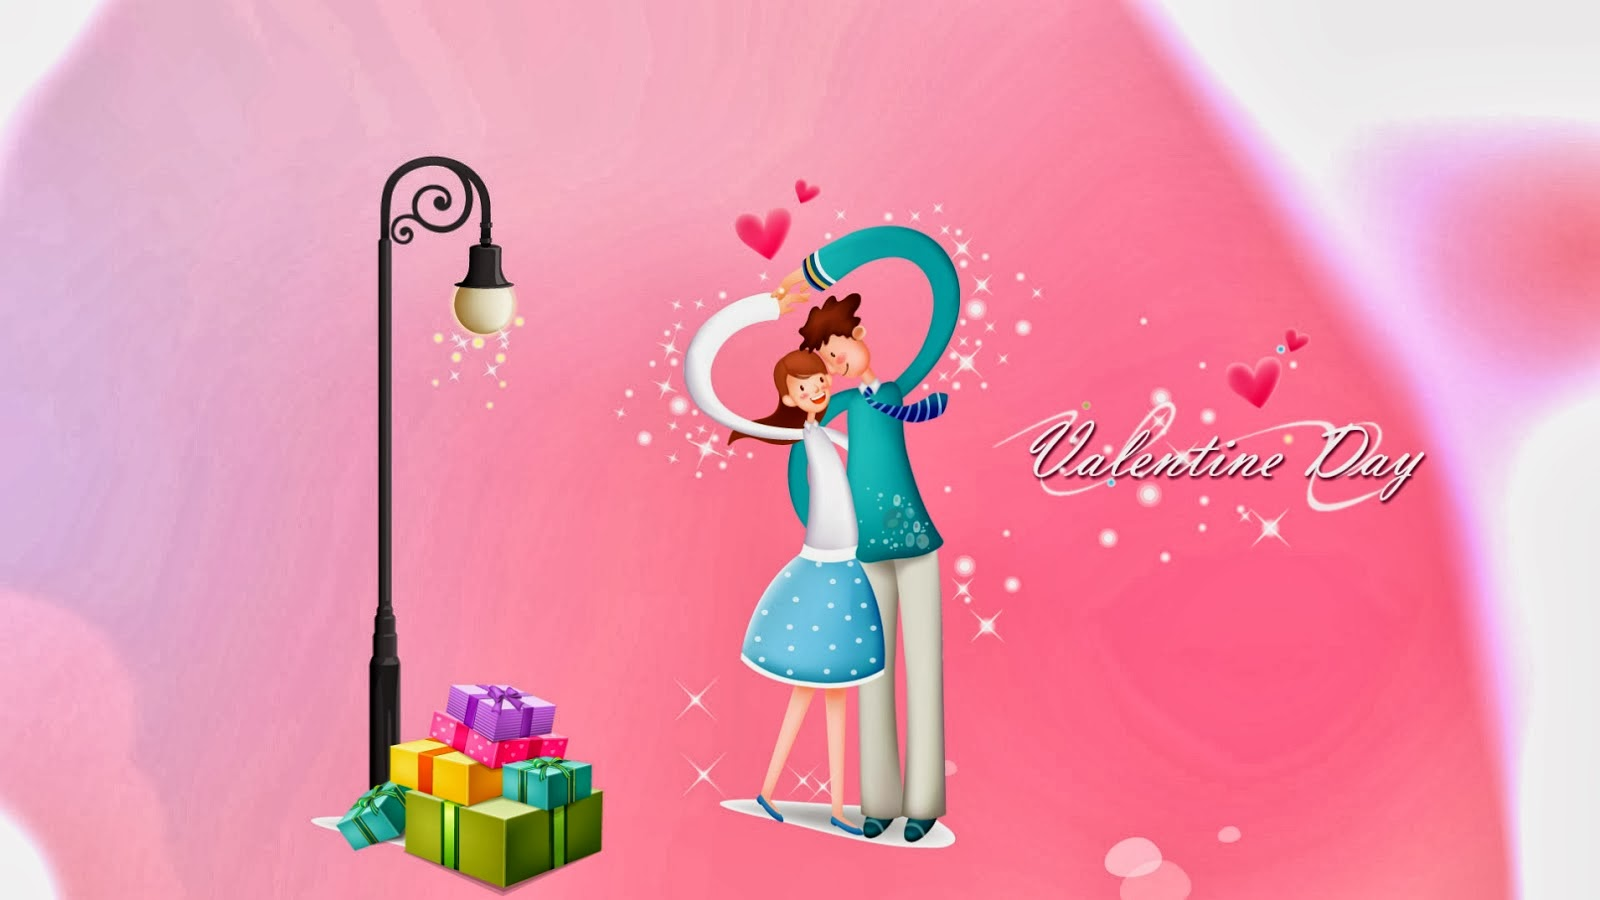 Valentines Day Images for Wife & Husband